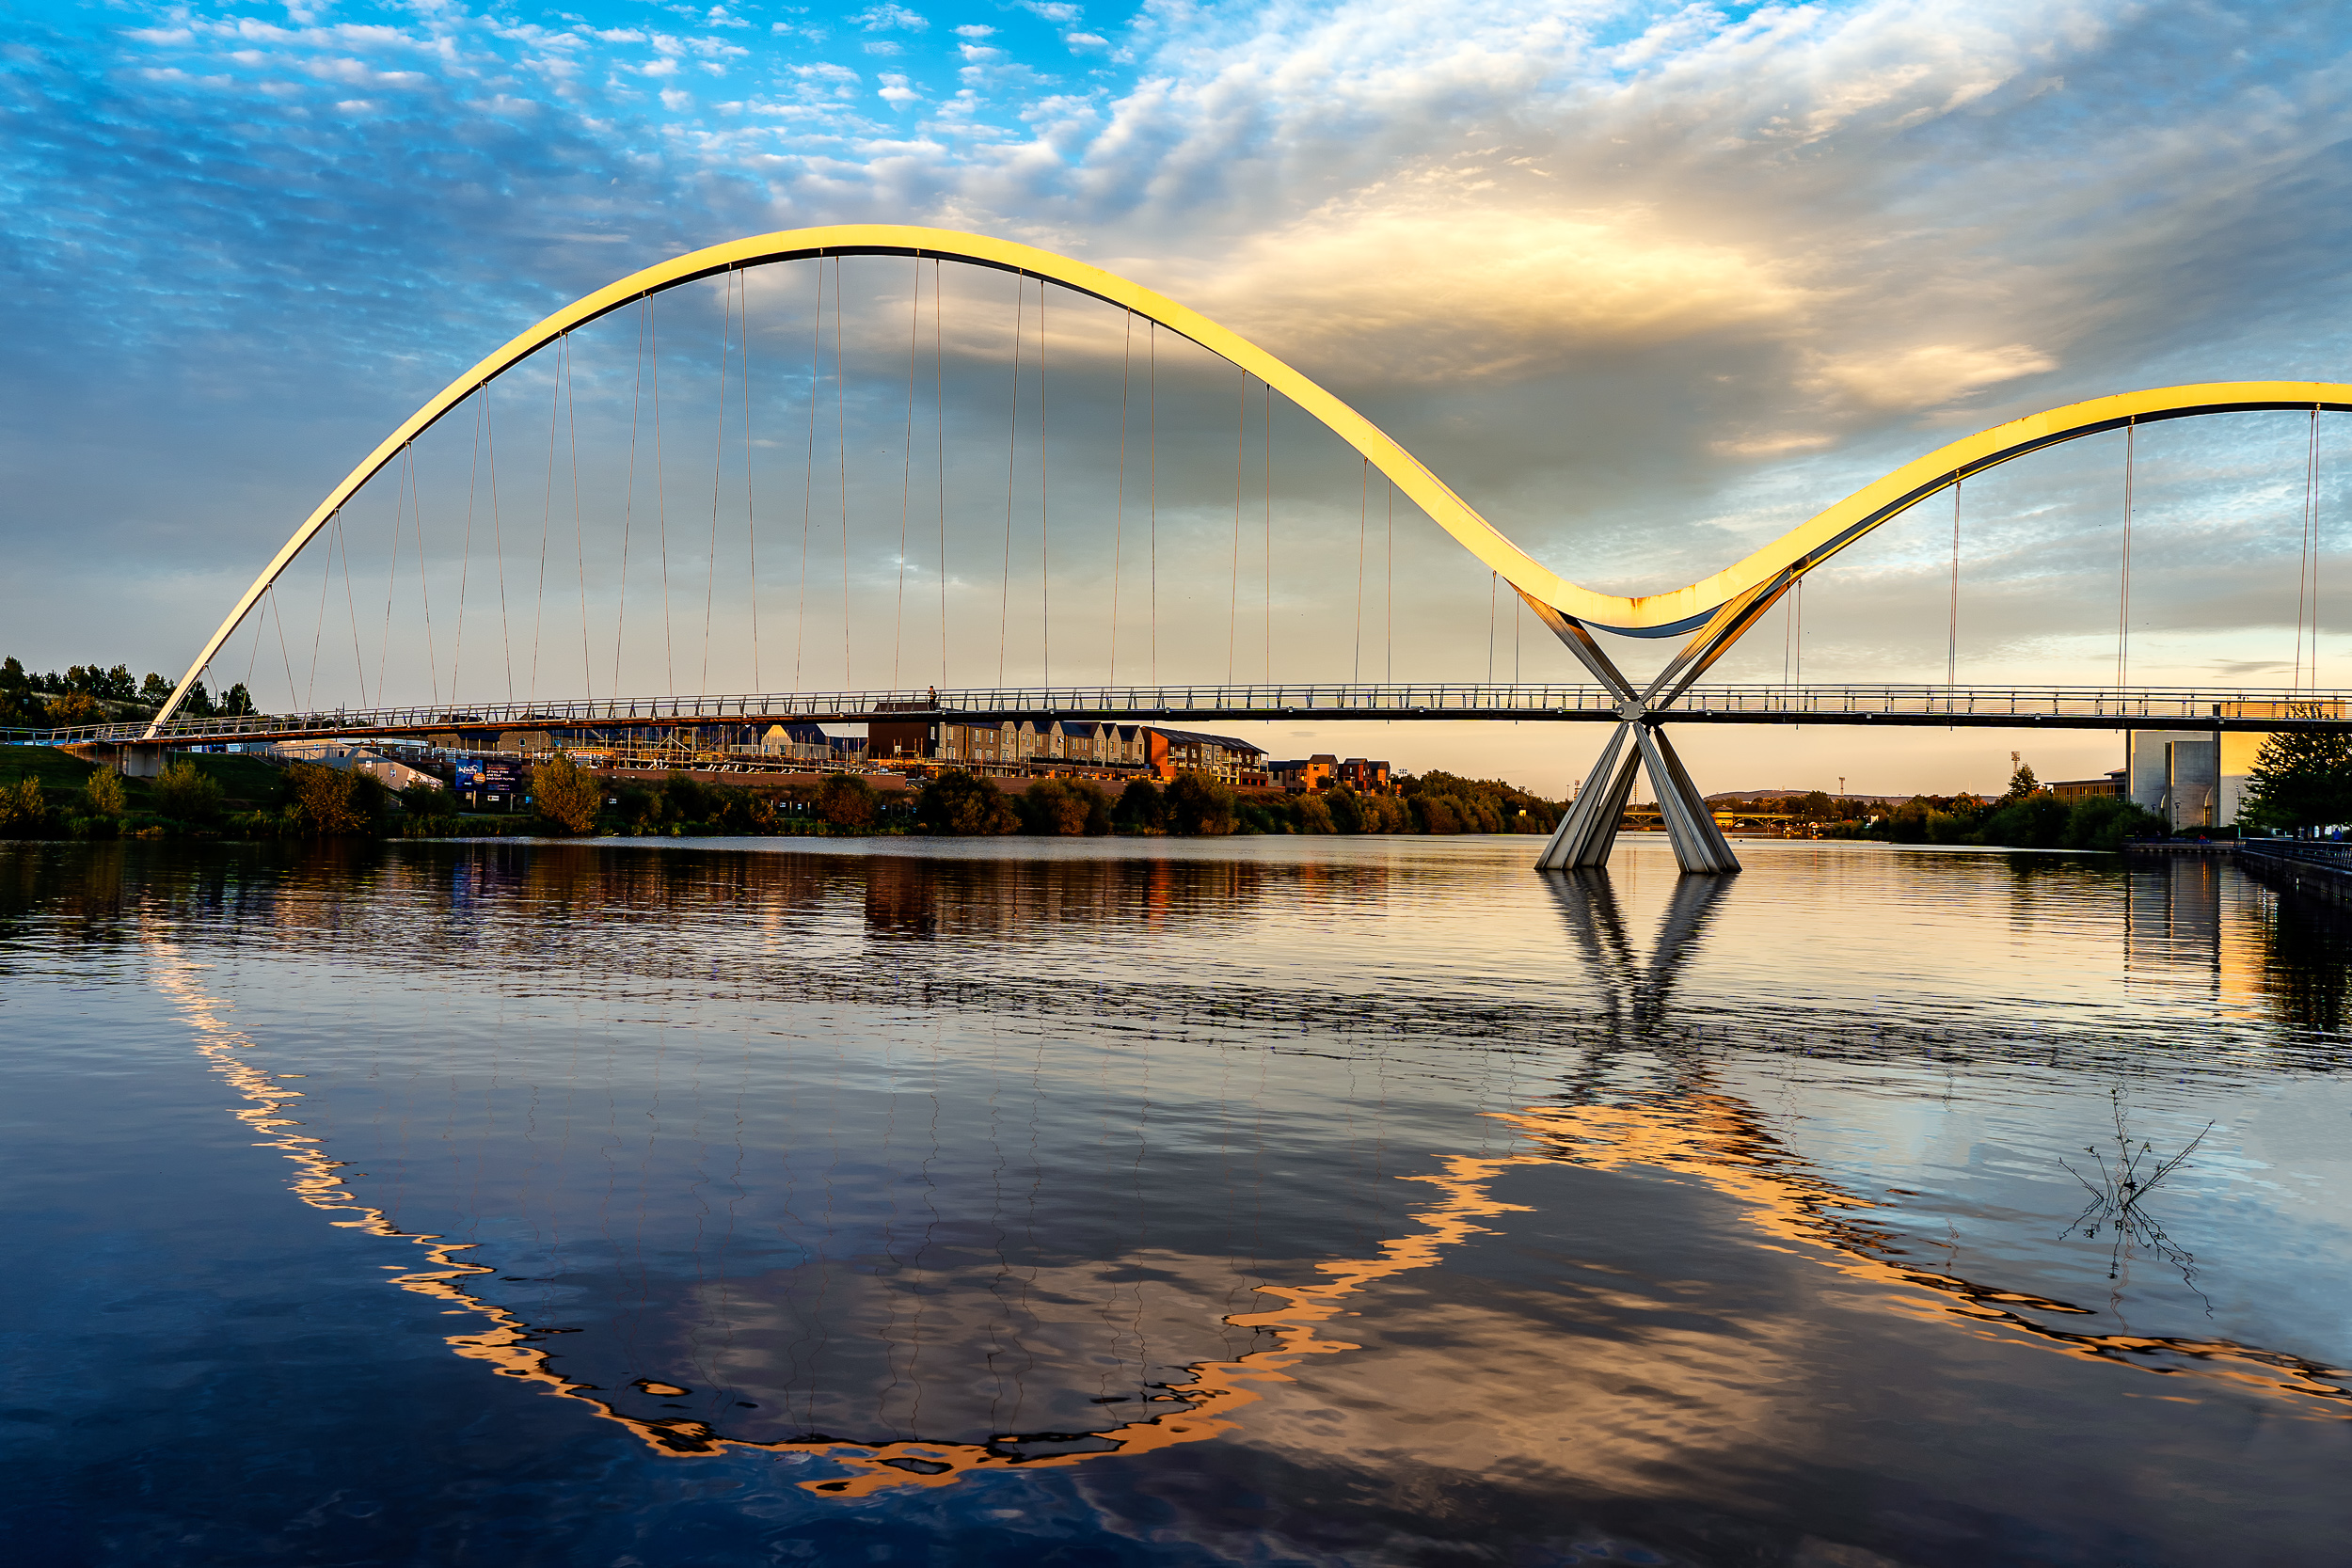 Infinity Bridge, Stockton, England